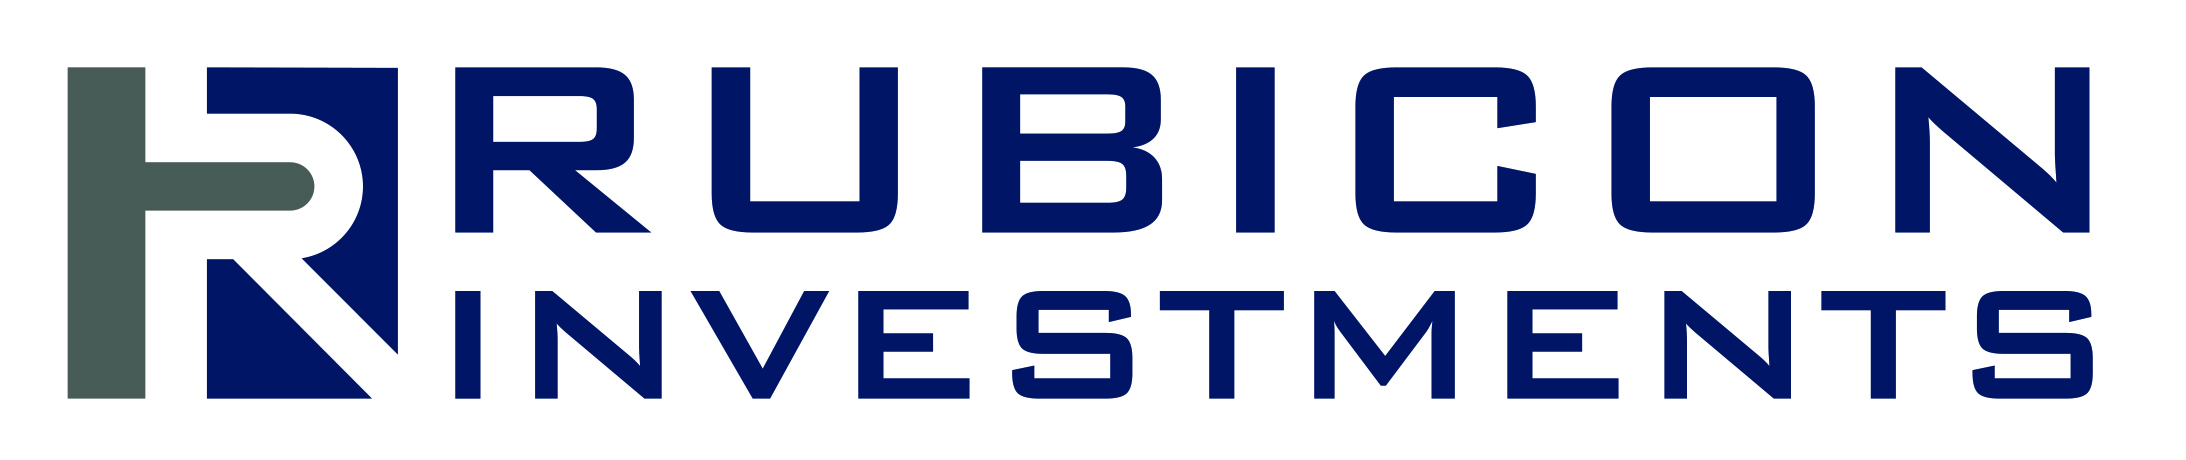 Rubicon Investments-logo